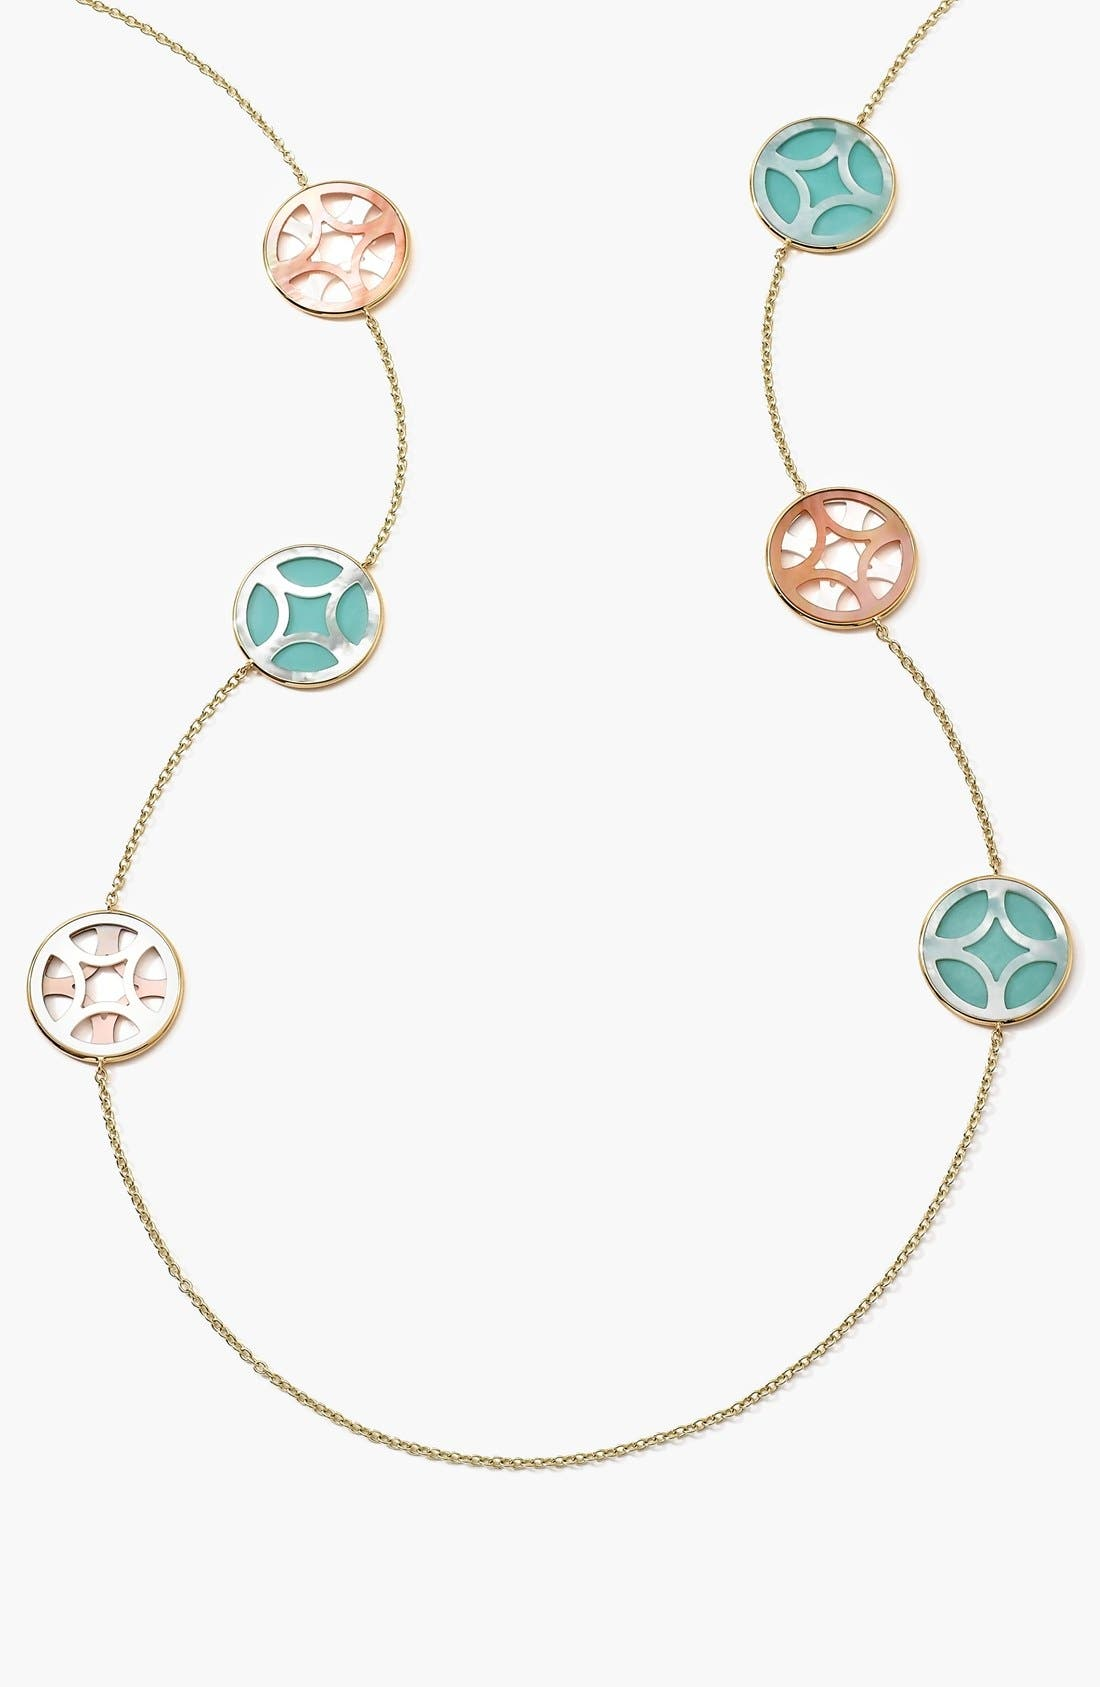 Main Image - Ippolita 'Polished Rock Candy' 18k Gold Long Station Necklace